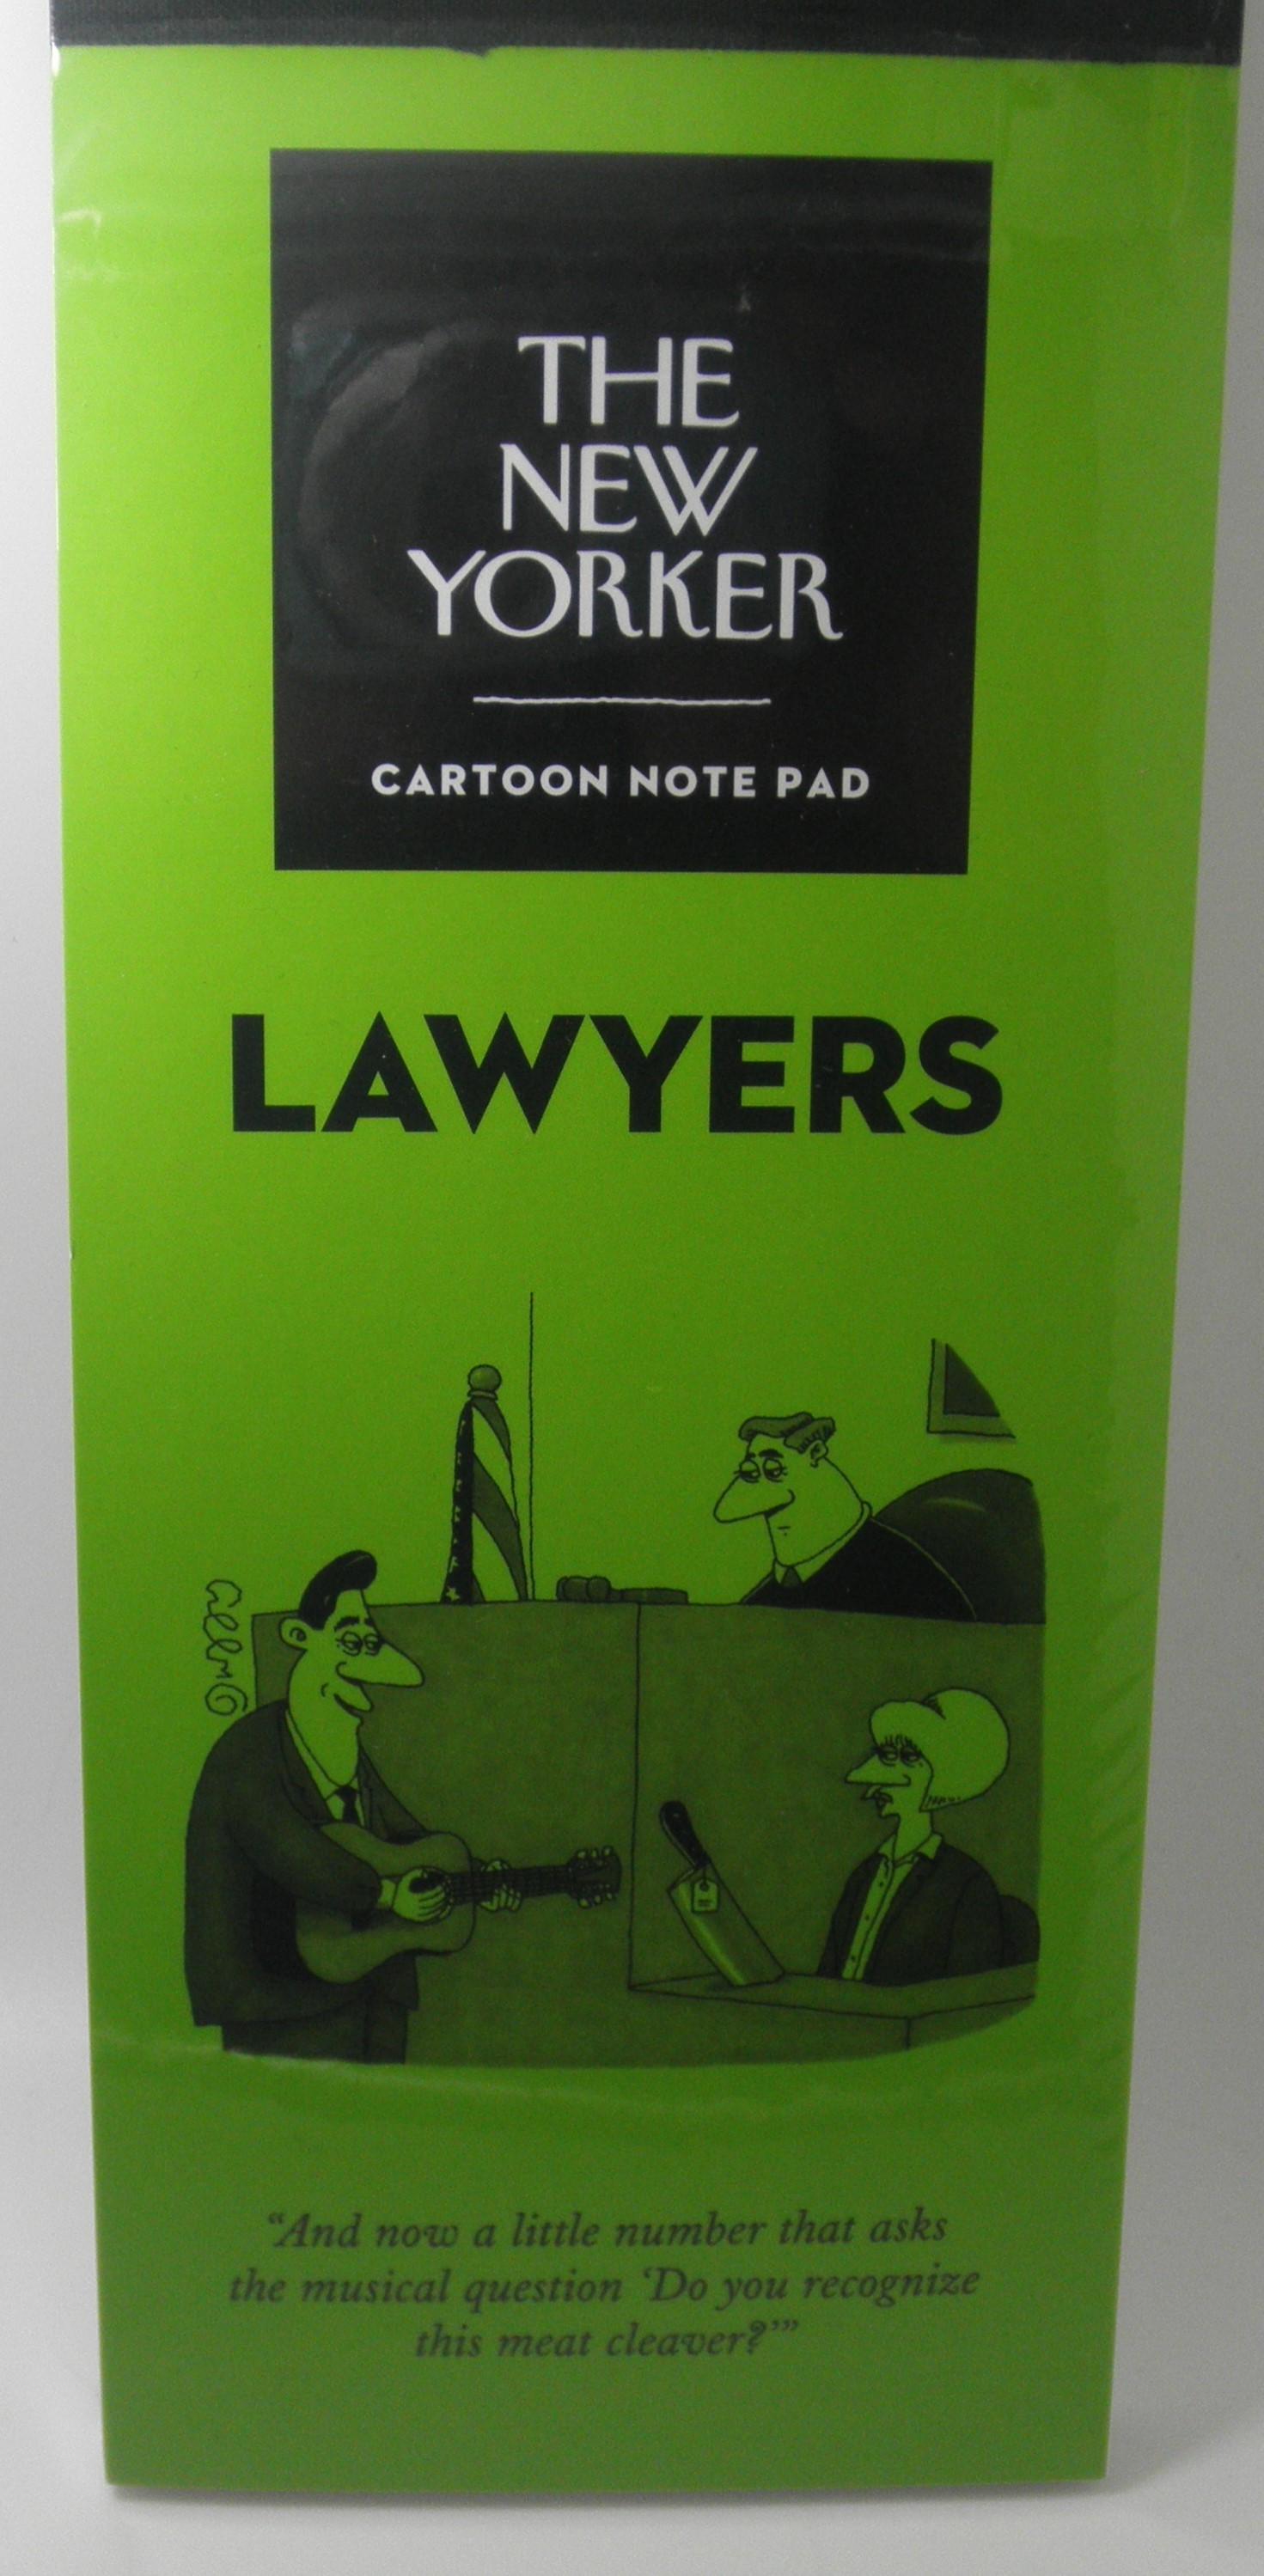 The New Yorker Cartoon Notepad Lawyers